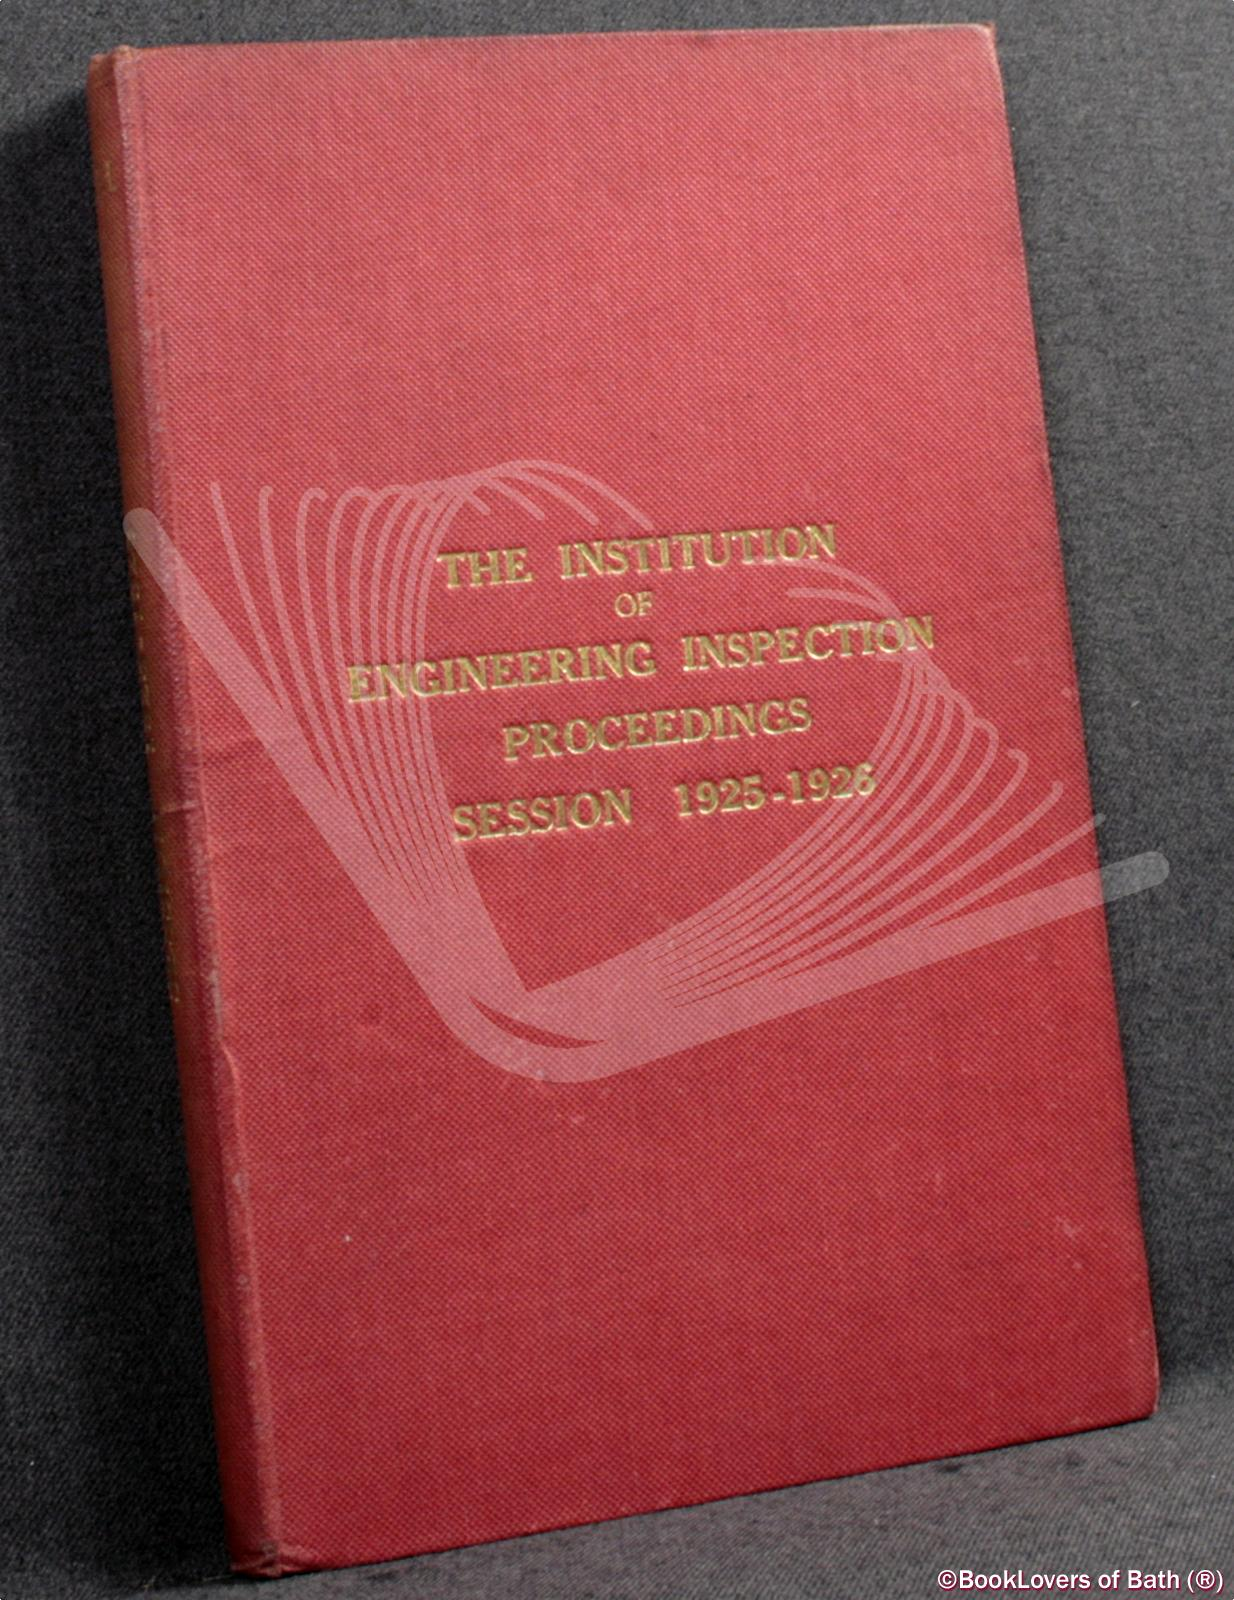 The Institute Of Engineering Inspection Proceedings Session 1925-1926 - Anon.